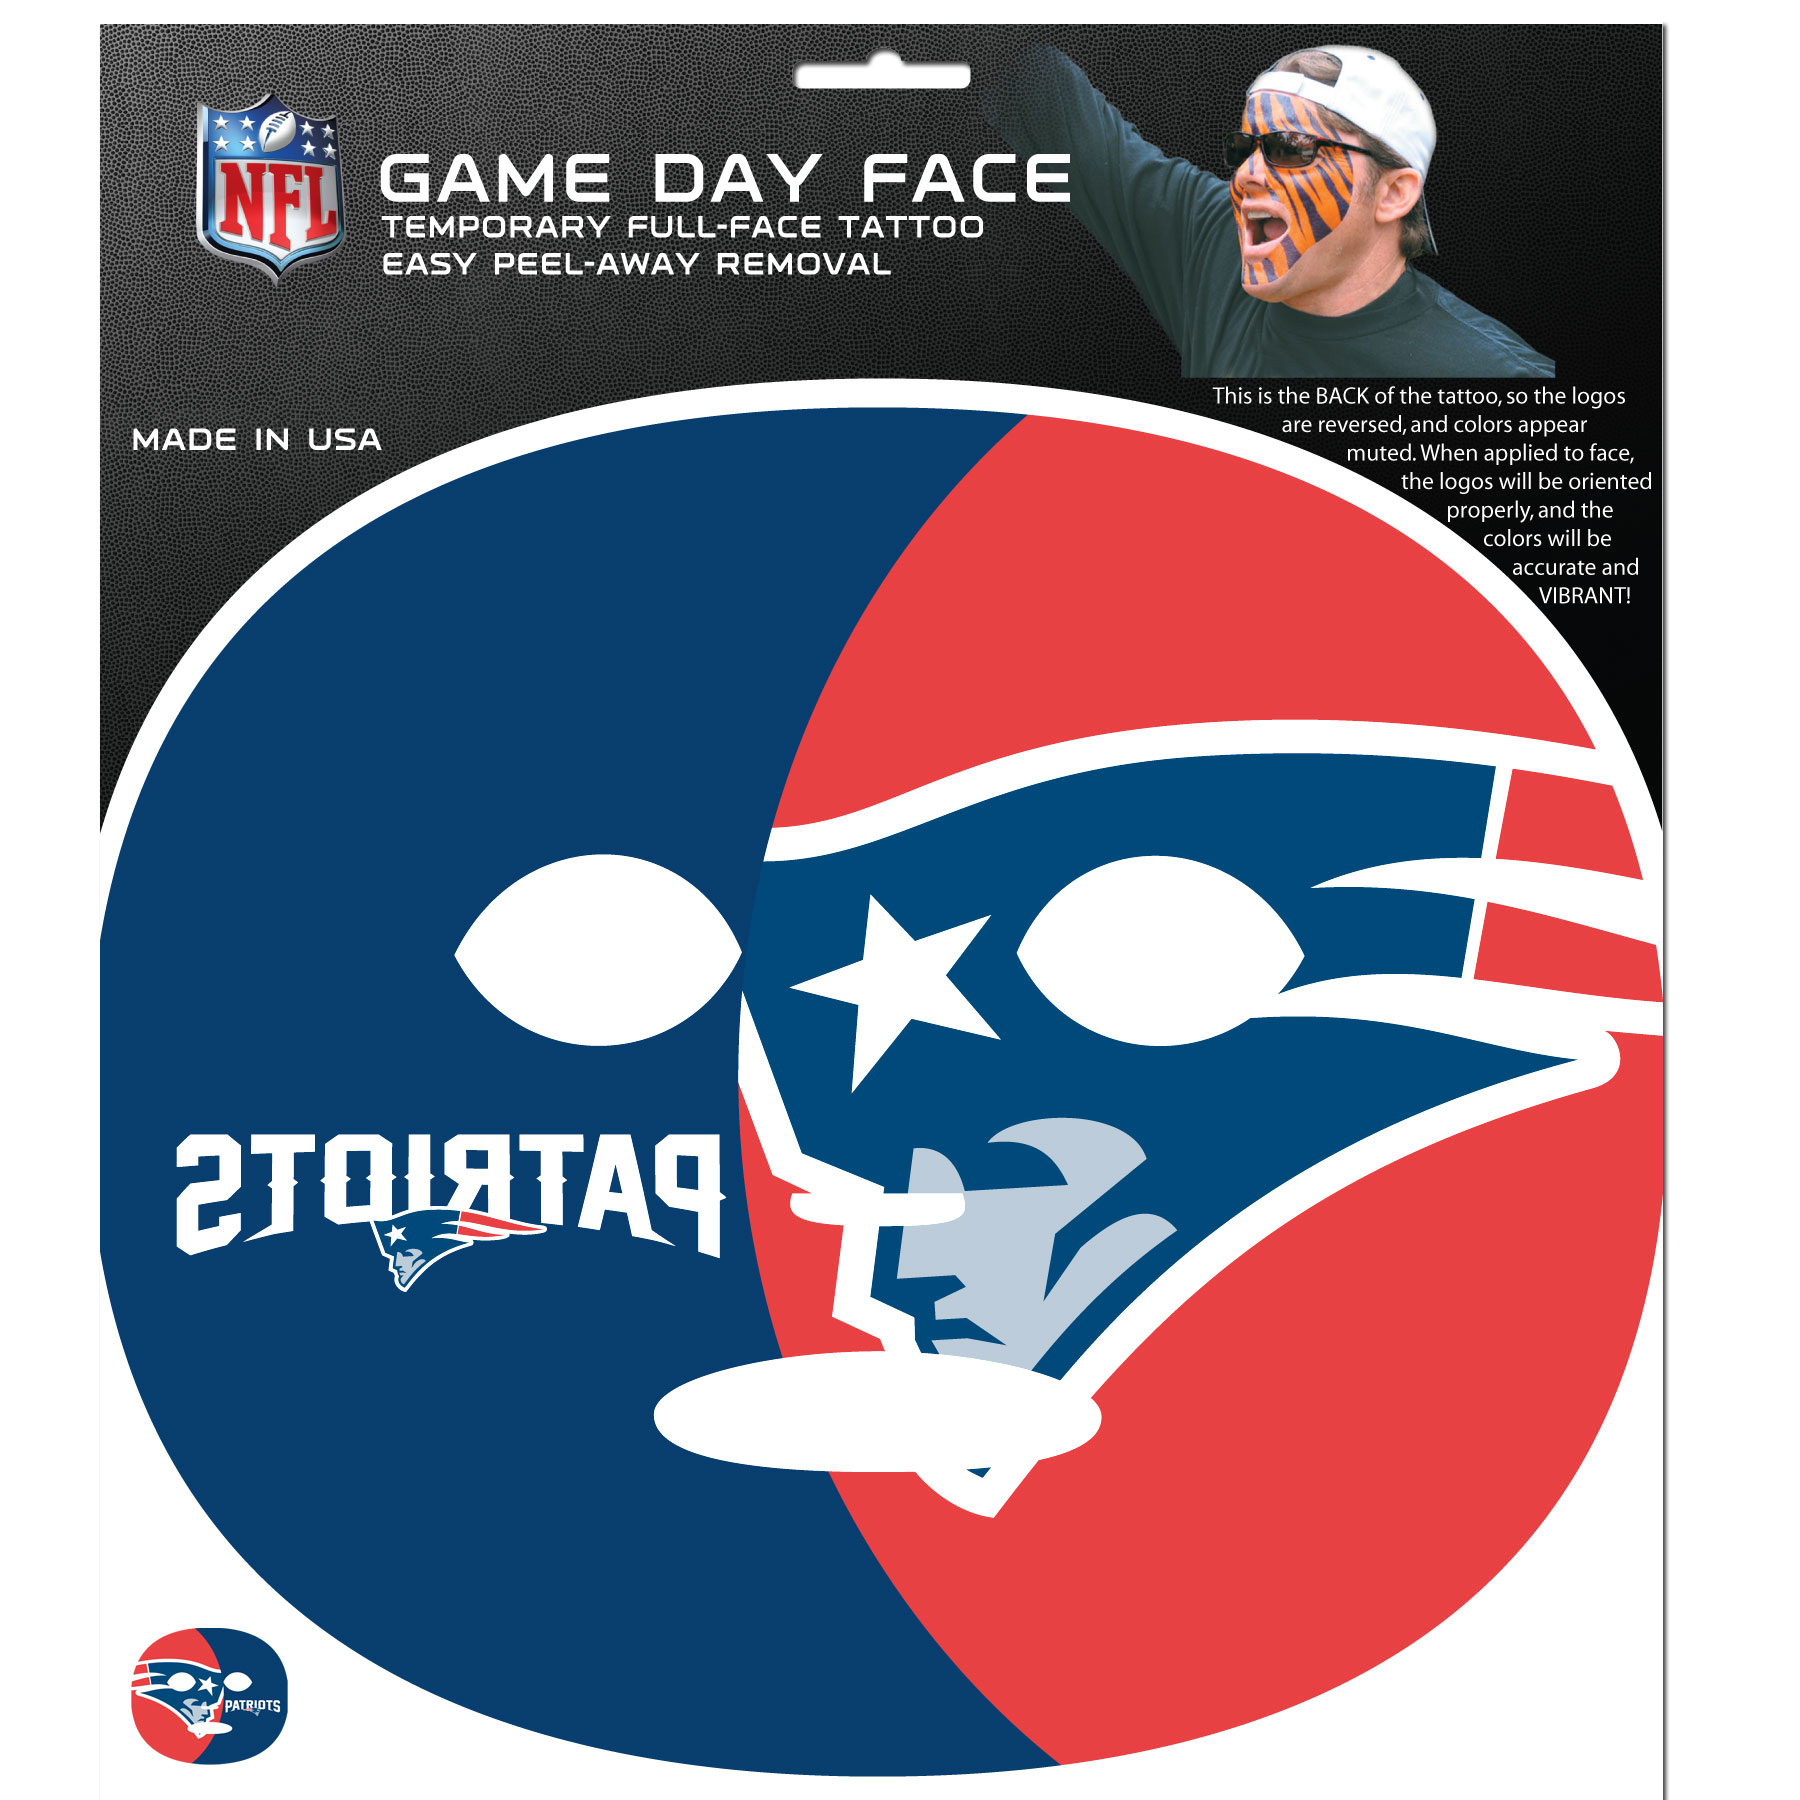 New England Patriots Set of 8 Game Day Faces - No better way to show your team pride than by painting your face. Siskiyou's Game Day Face Temporary Tattoo isn't your typical face paint. It is a water based application that doesn't smudge, smear or sweat off while you're wearing it and easily peels off after you're done celebrating your team's big Win! The temporary tattoo is large enough to trim down to fit your face. Our Game Day Face Temporary Tattoo's are fun for fans of all ages. You may have seen our product before, these are the same Temporary Face Tattoos as pitched on ABC's Shark Tank.